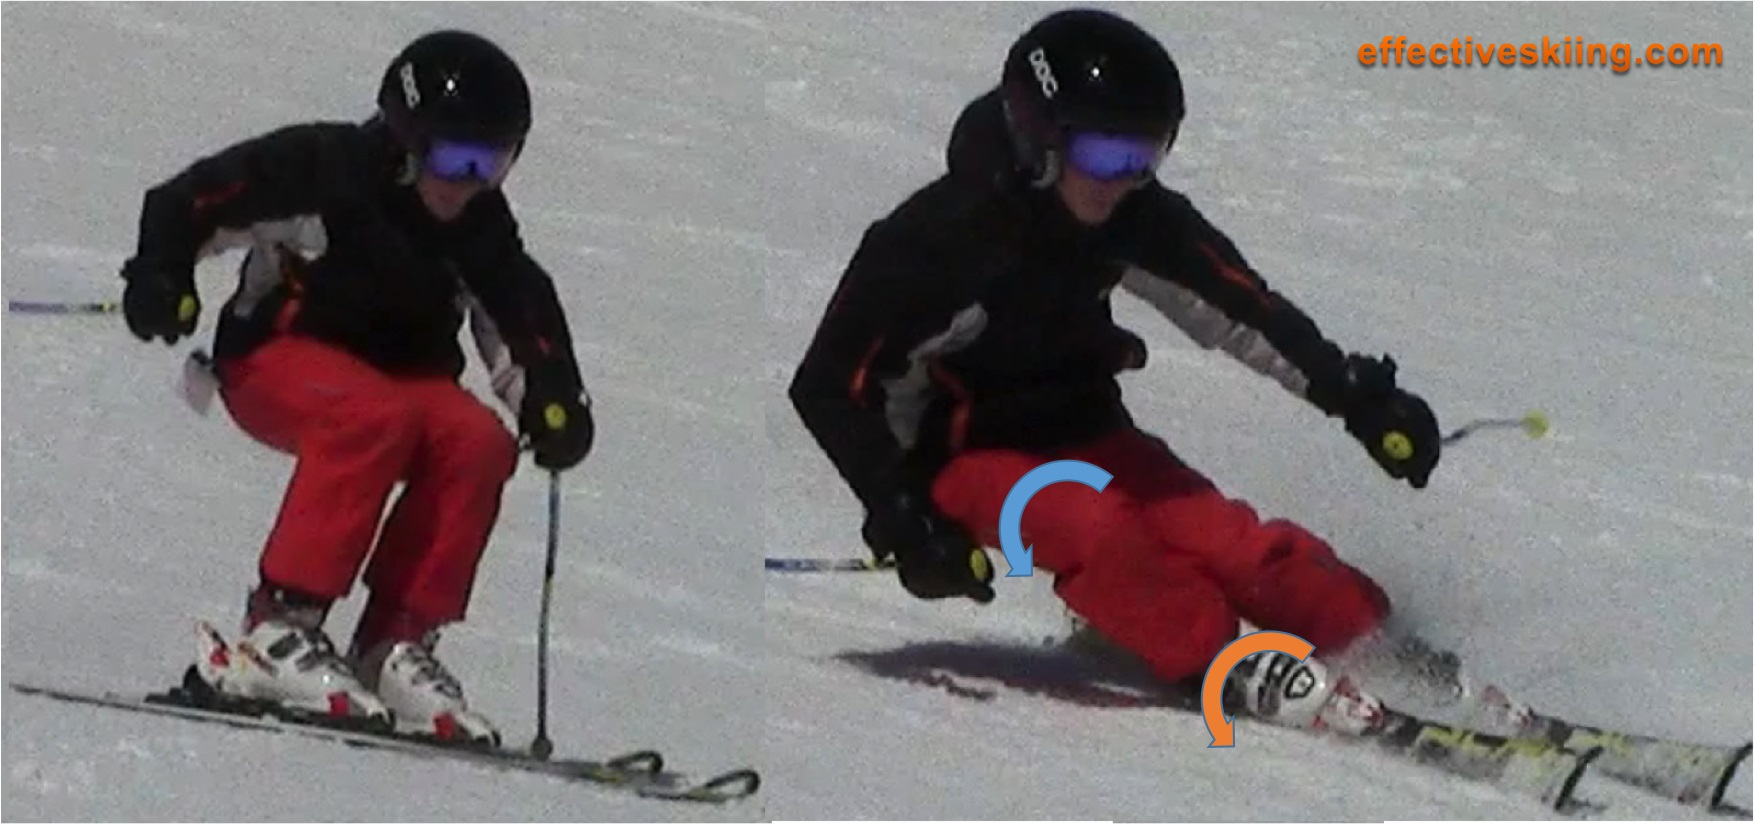 Anatomical terms of motion for skiing